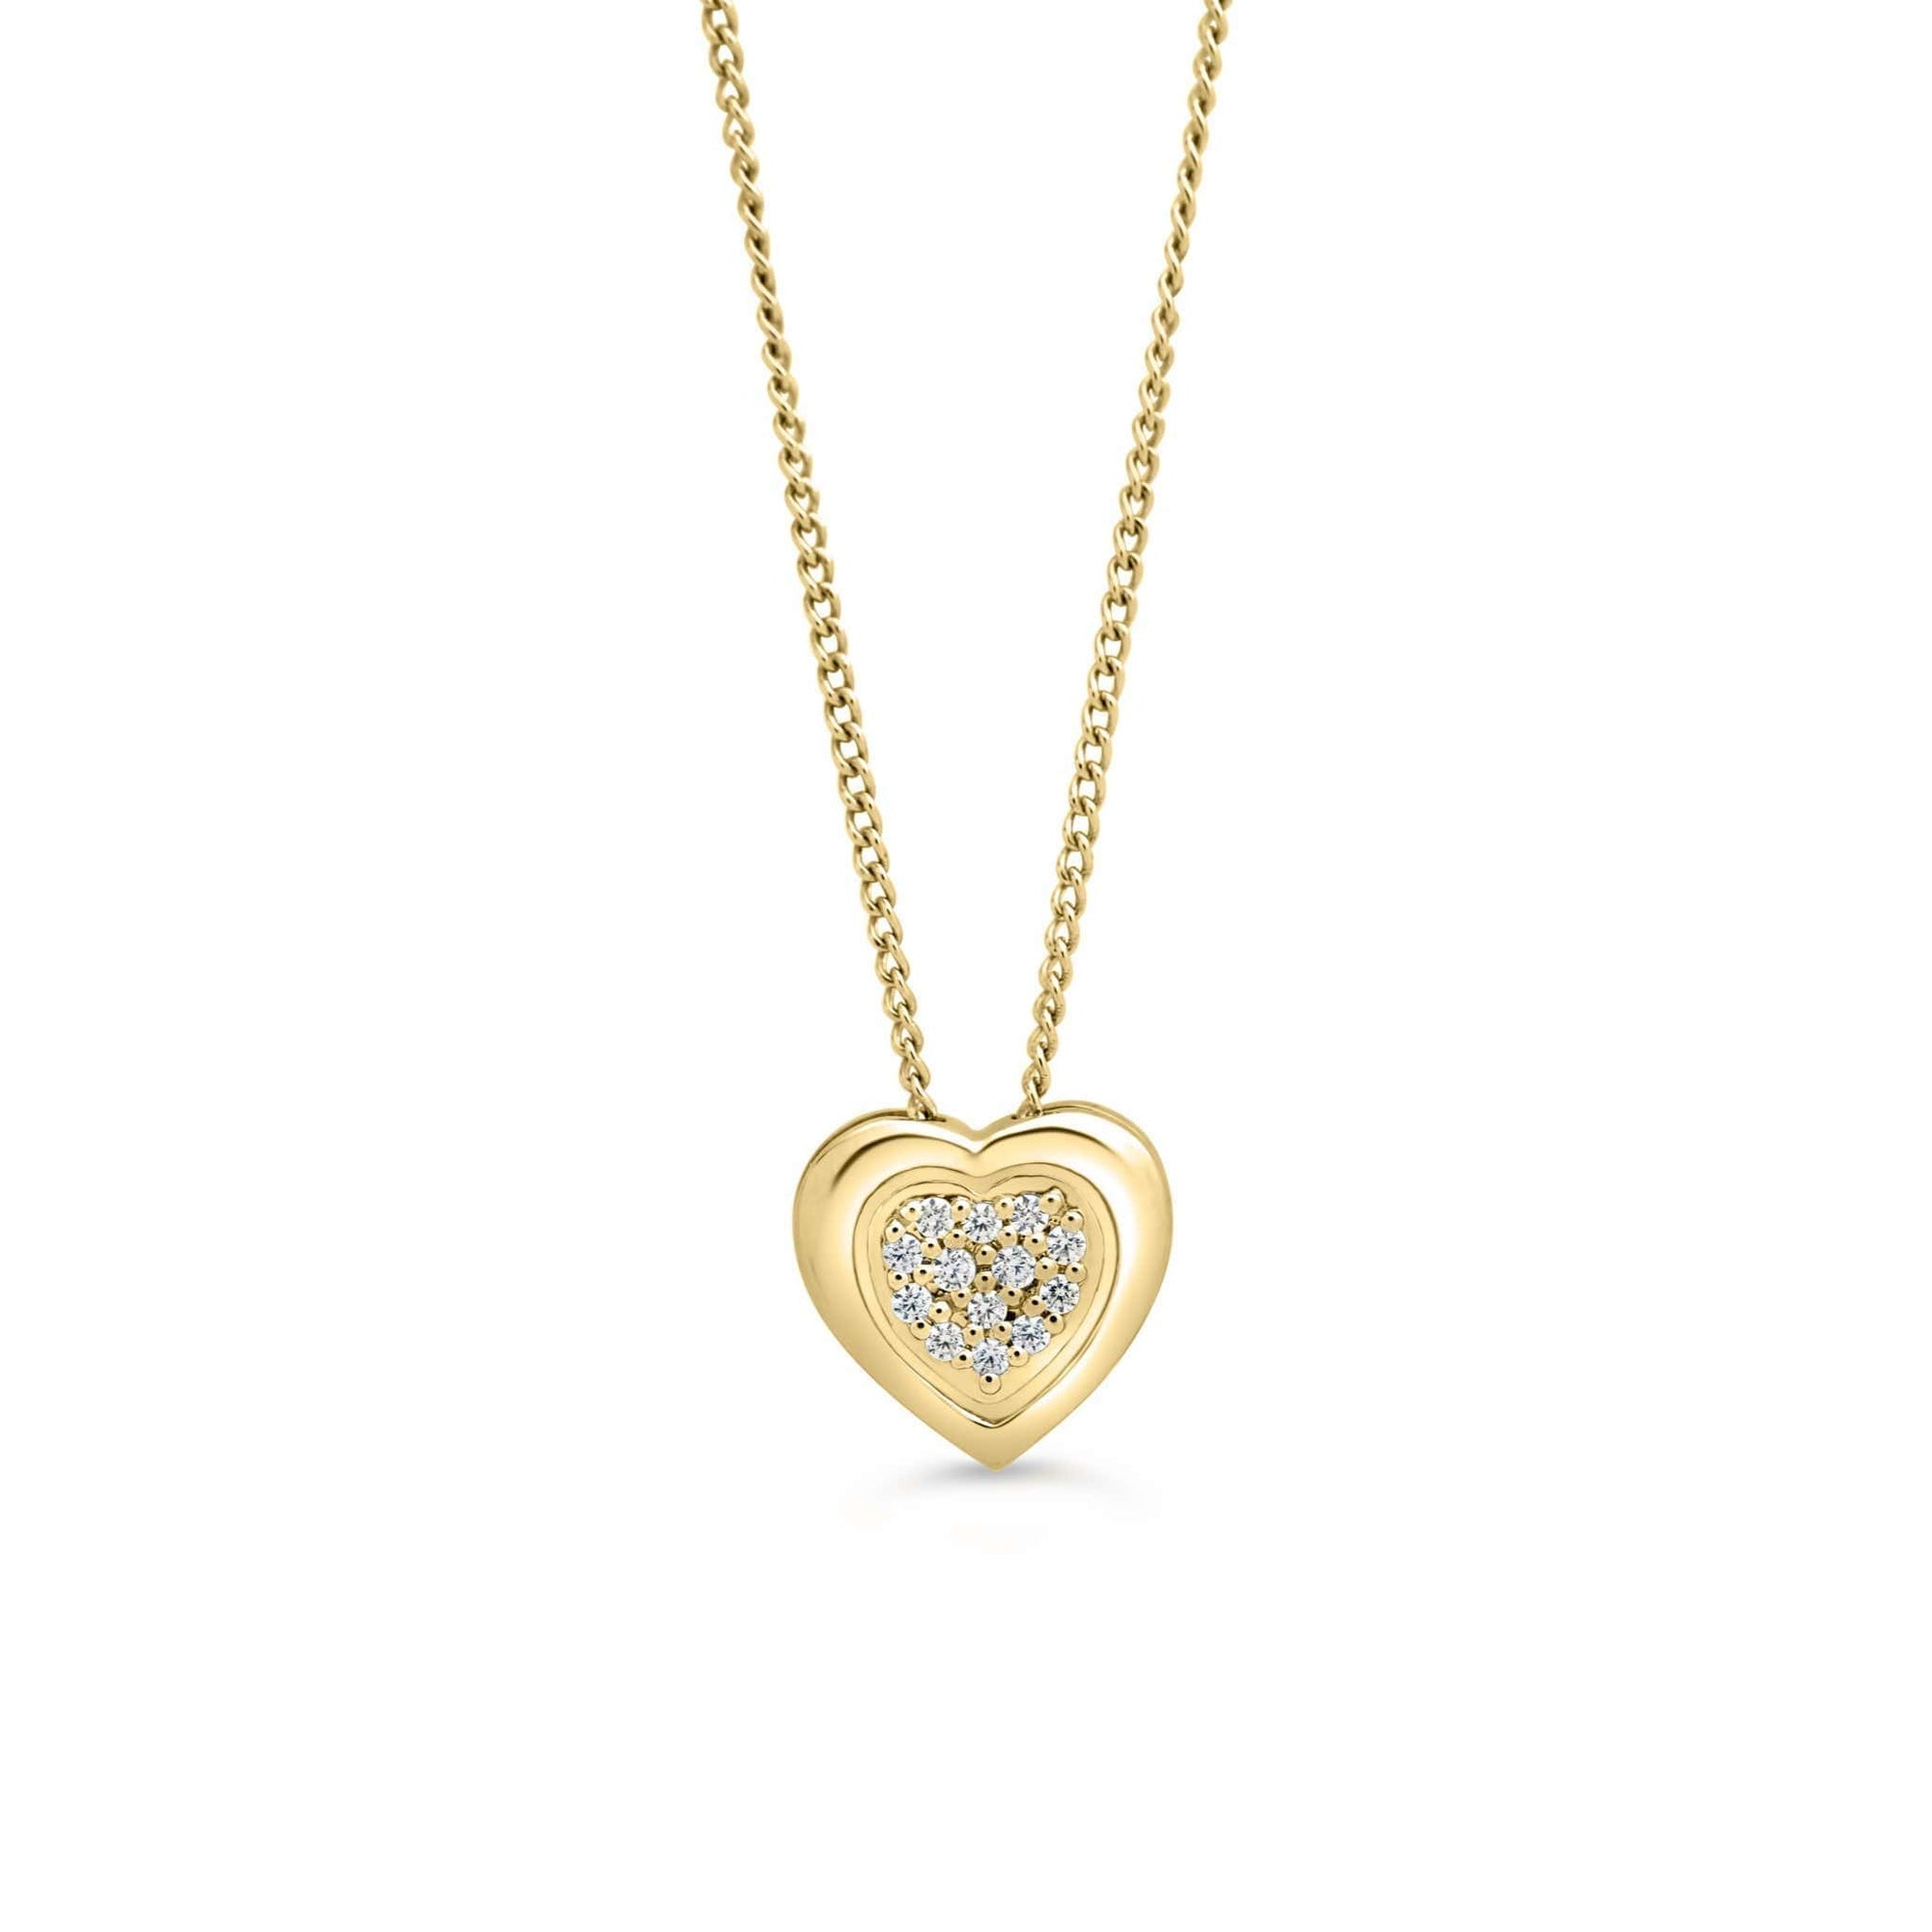 10K Yellow Gold Diamond Heart Necklace at Arman's Jewellers